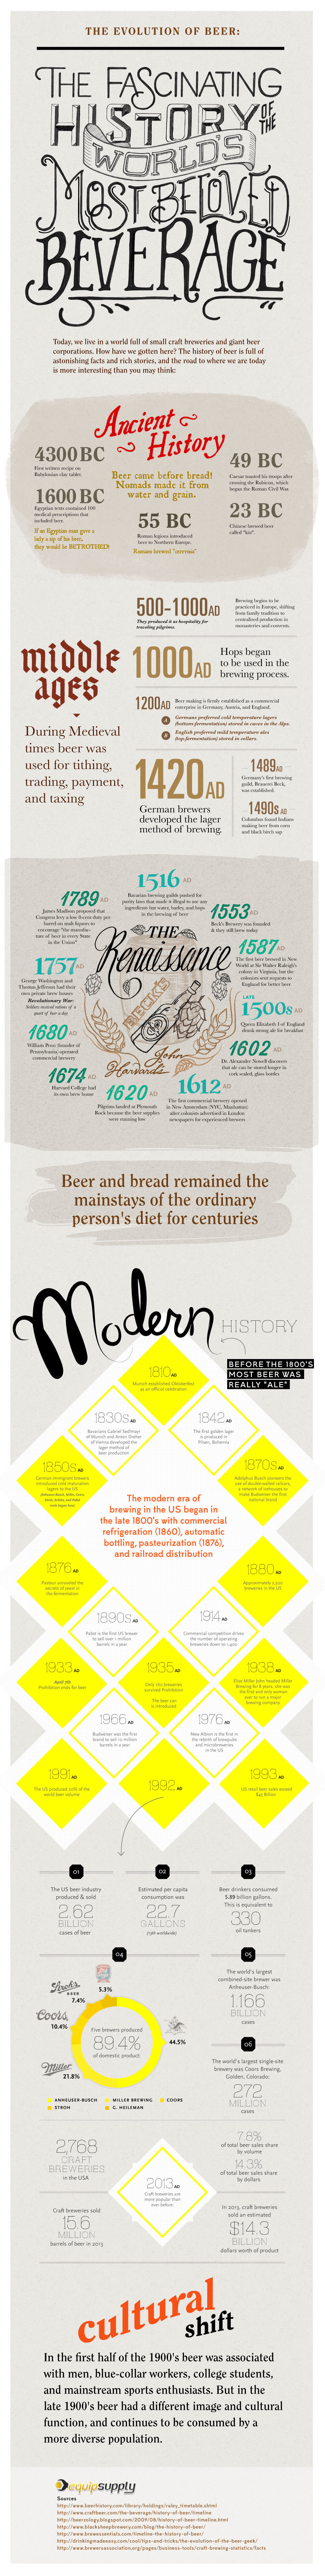 The Evolution of Beer infographic